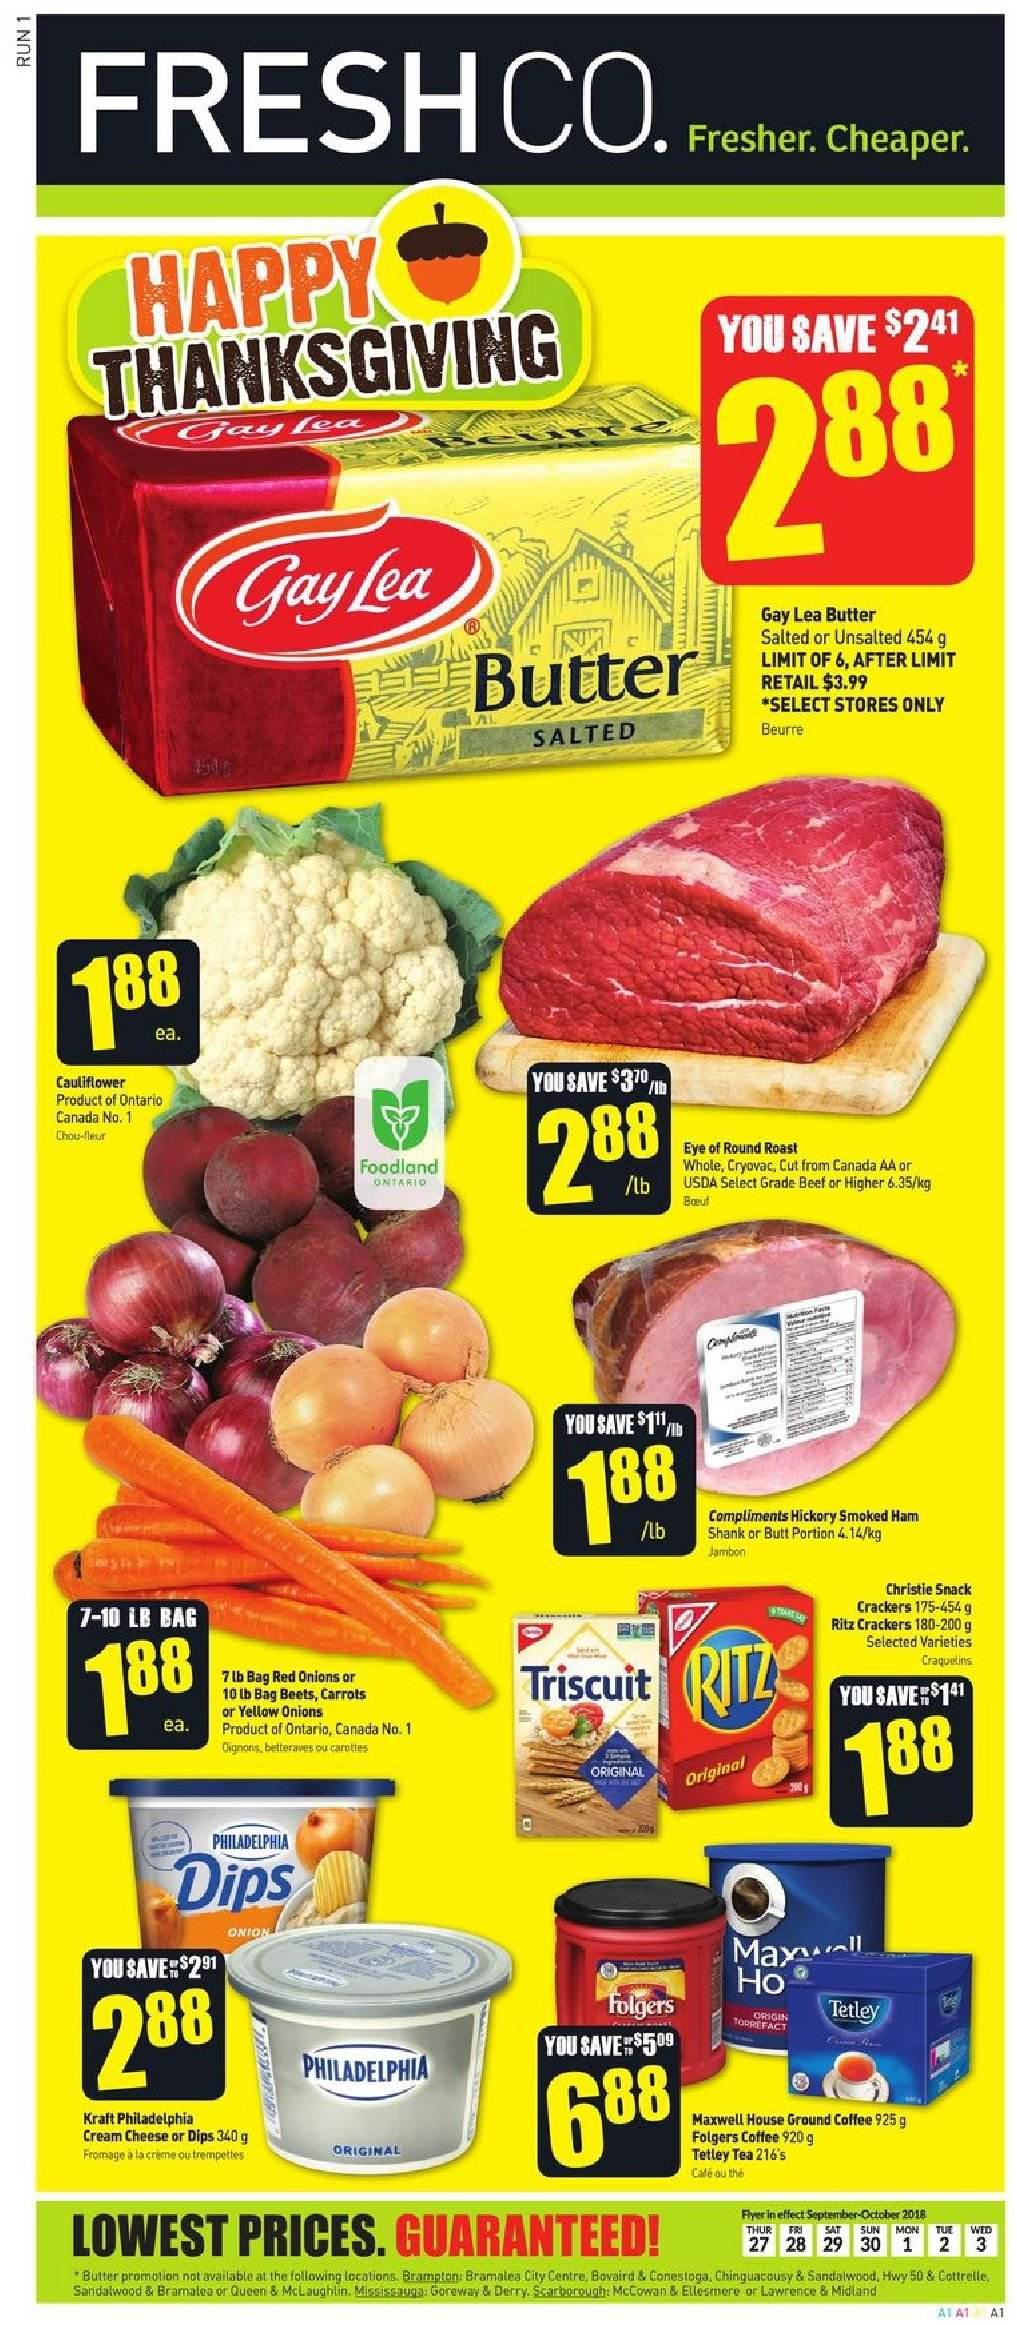 FreshCo. Flyer  - September 27, 2018 - October 03, 2018. Page 1.